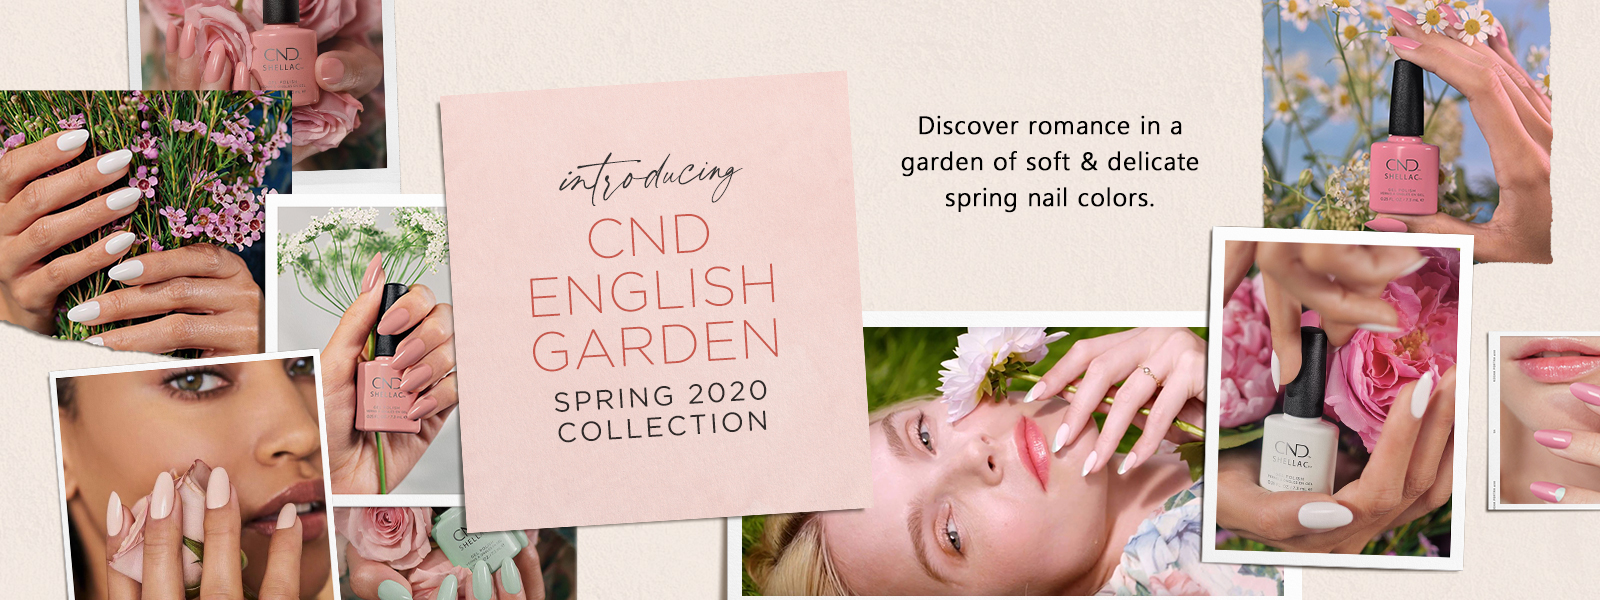 CND Spring 2020 English Garden Collection